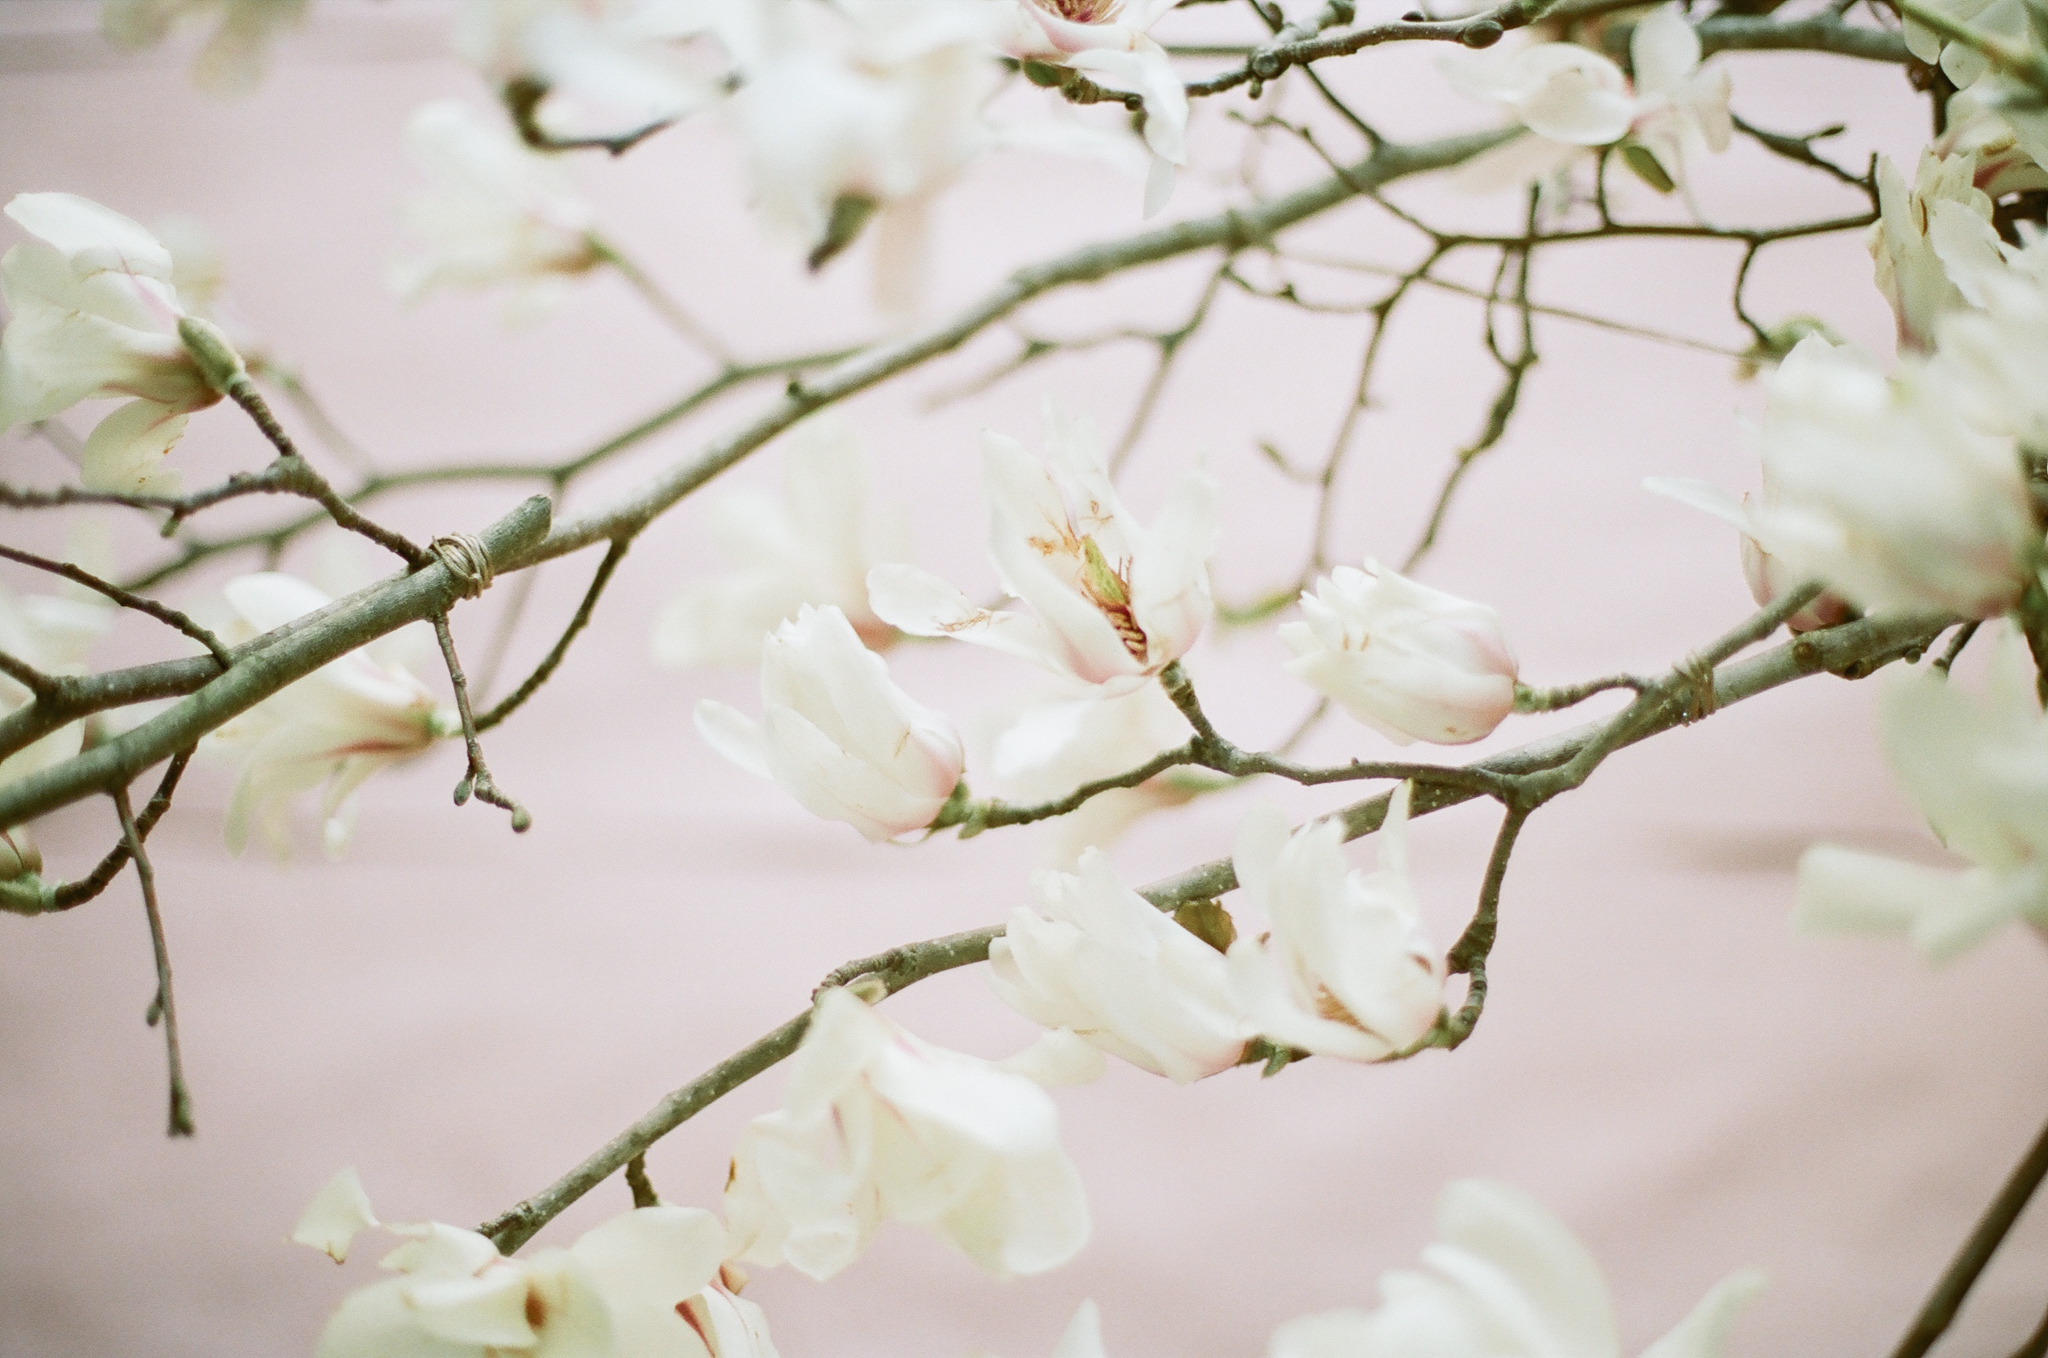 Spring flowering branches trees magnolia